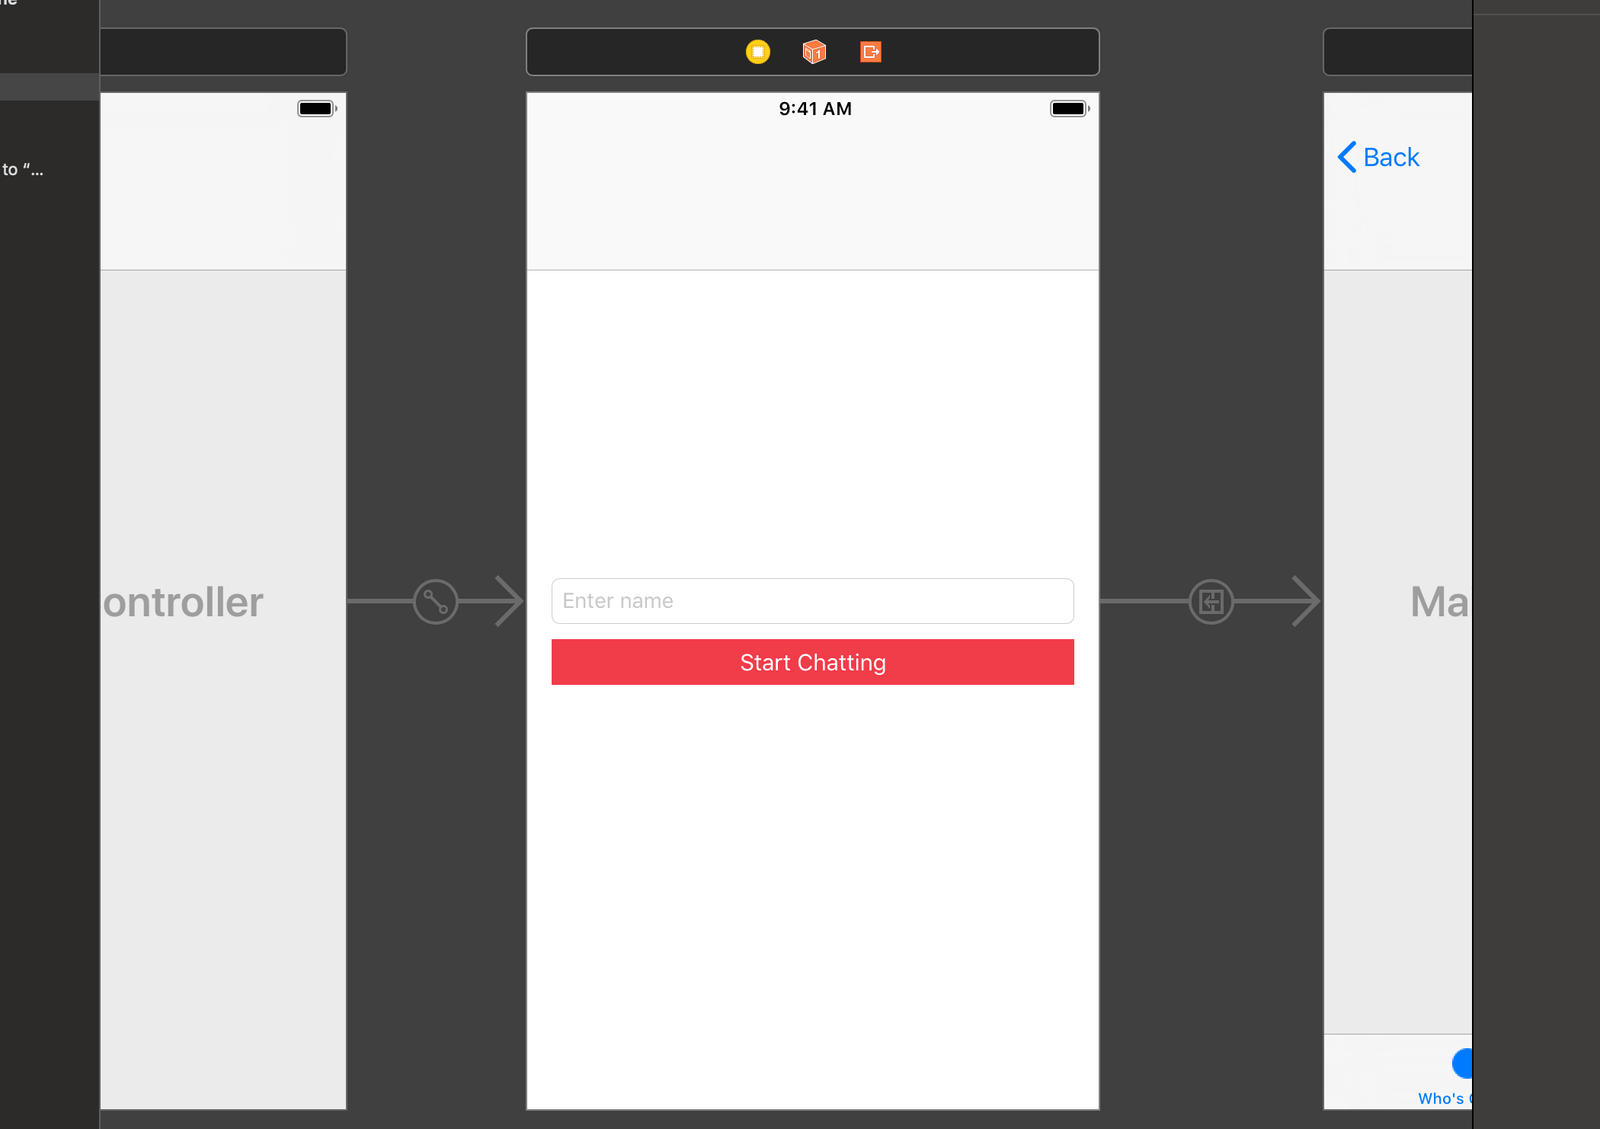 Creating an iOS app with user presence